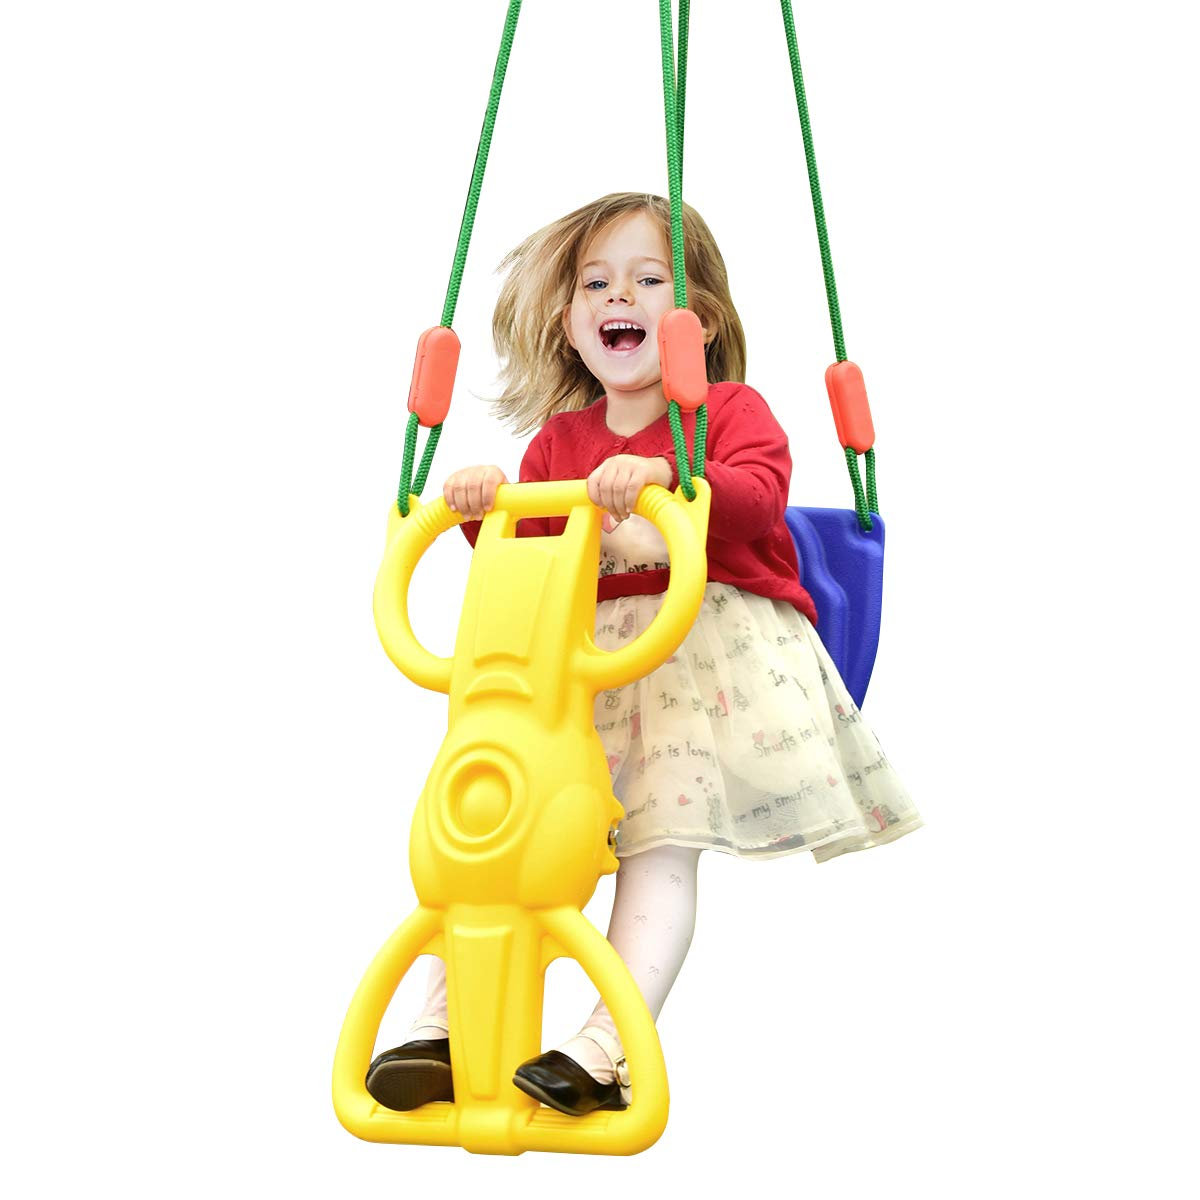 Costzon Rider Swing with Hangers, Wind Rider Glider Swing for Kids Playground (Rider Swing for 1 Kid)